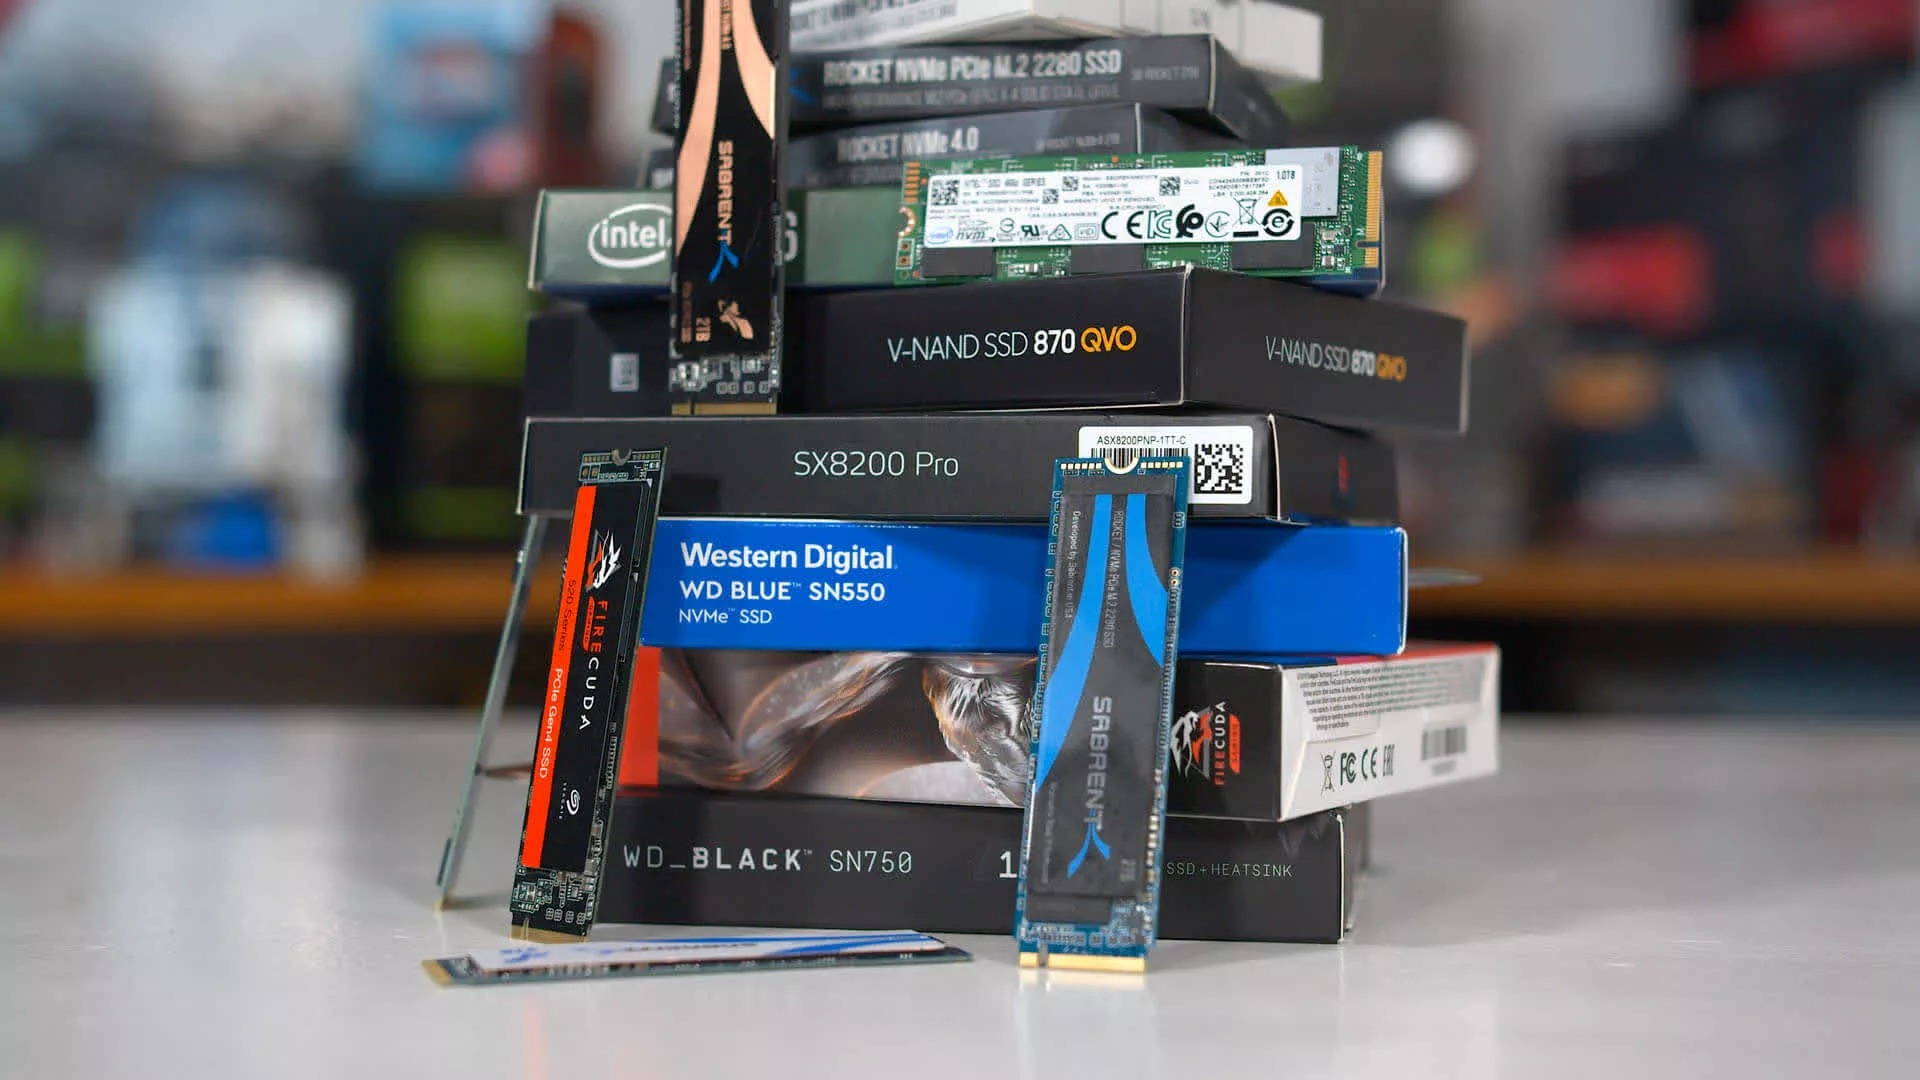 SSD shipments outpaced HDDs by 3:2 last quarter, but hard disks still lead the storage race